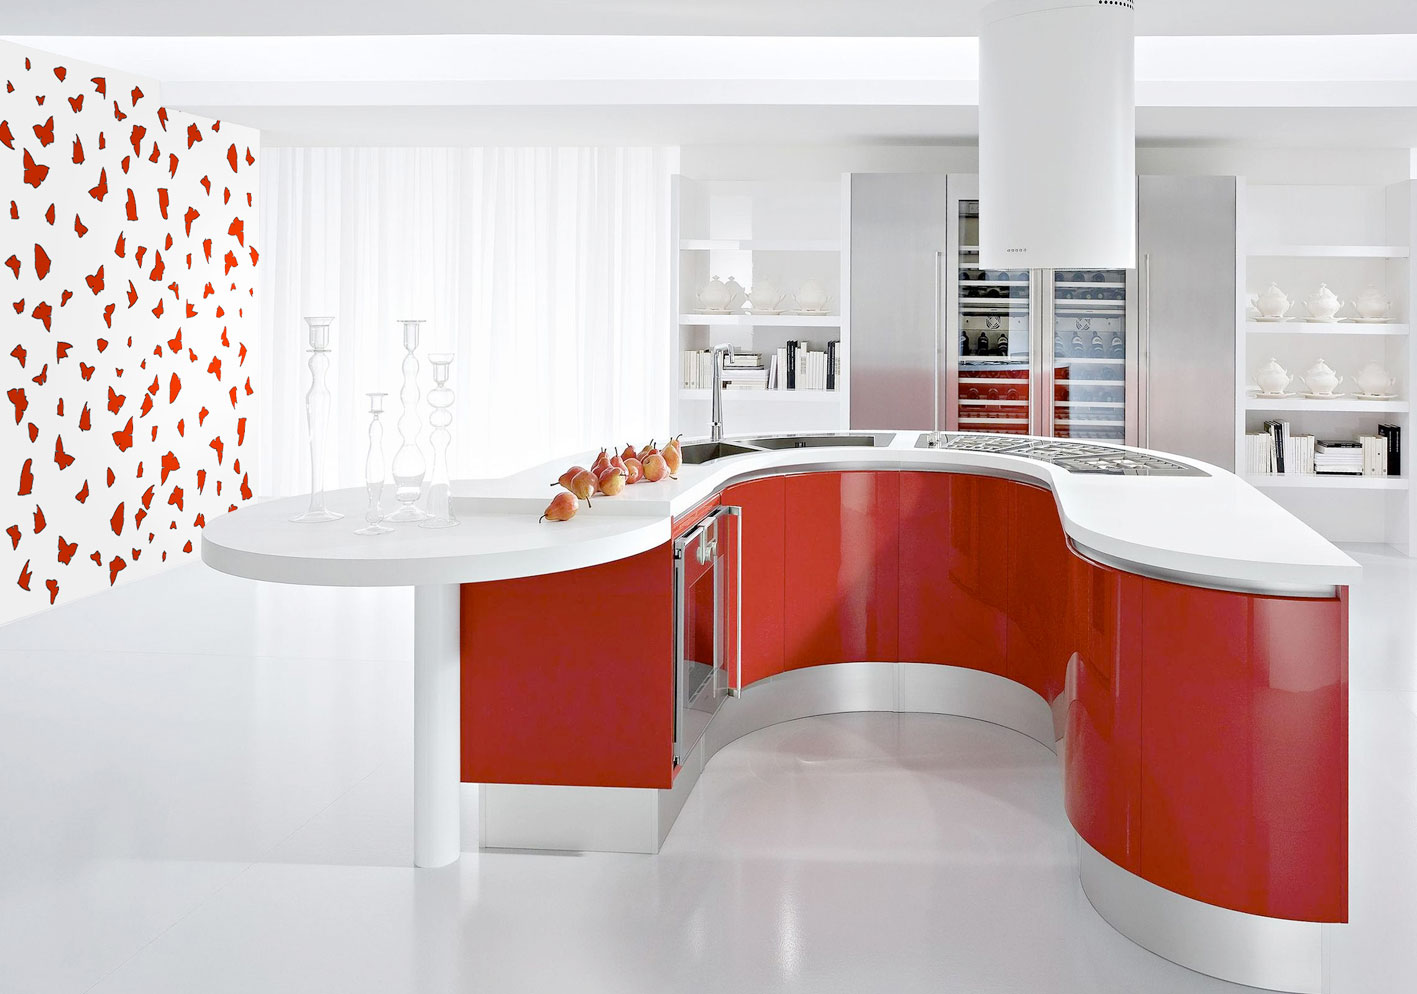 KITCHEN-RED-BUTTERFLIES divers Thierry Bisch painter animals painting art decoration hotel design interior luxury nature biodiversity conservation